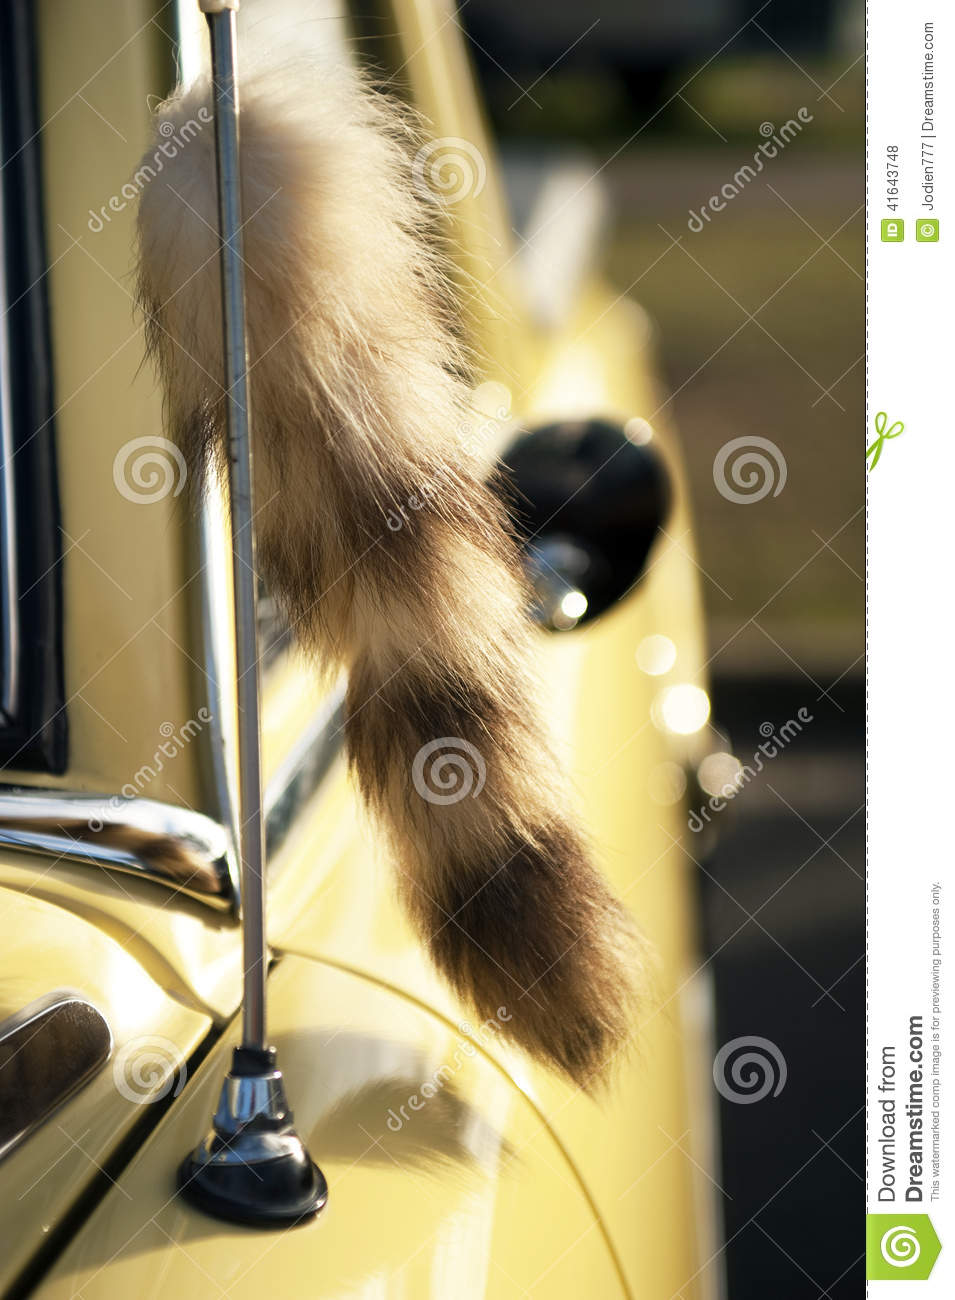 Fox tail on vintage car stock photo  Image of transport